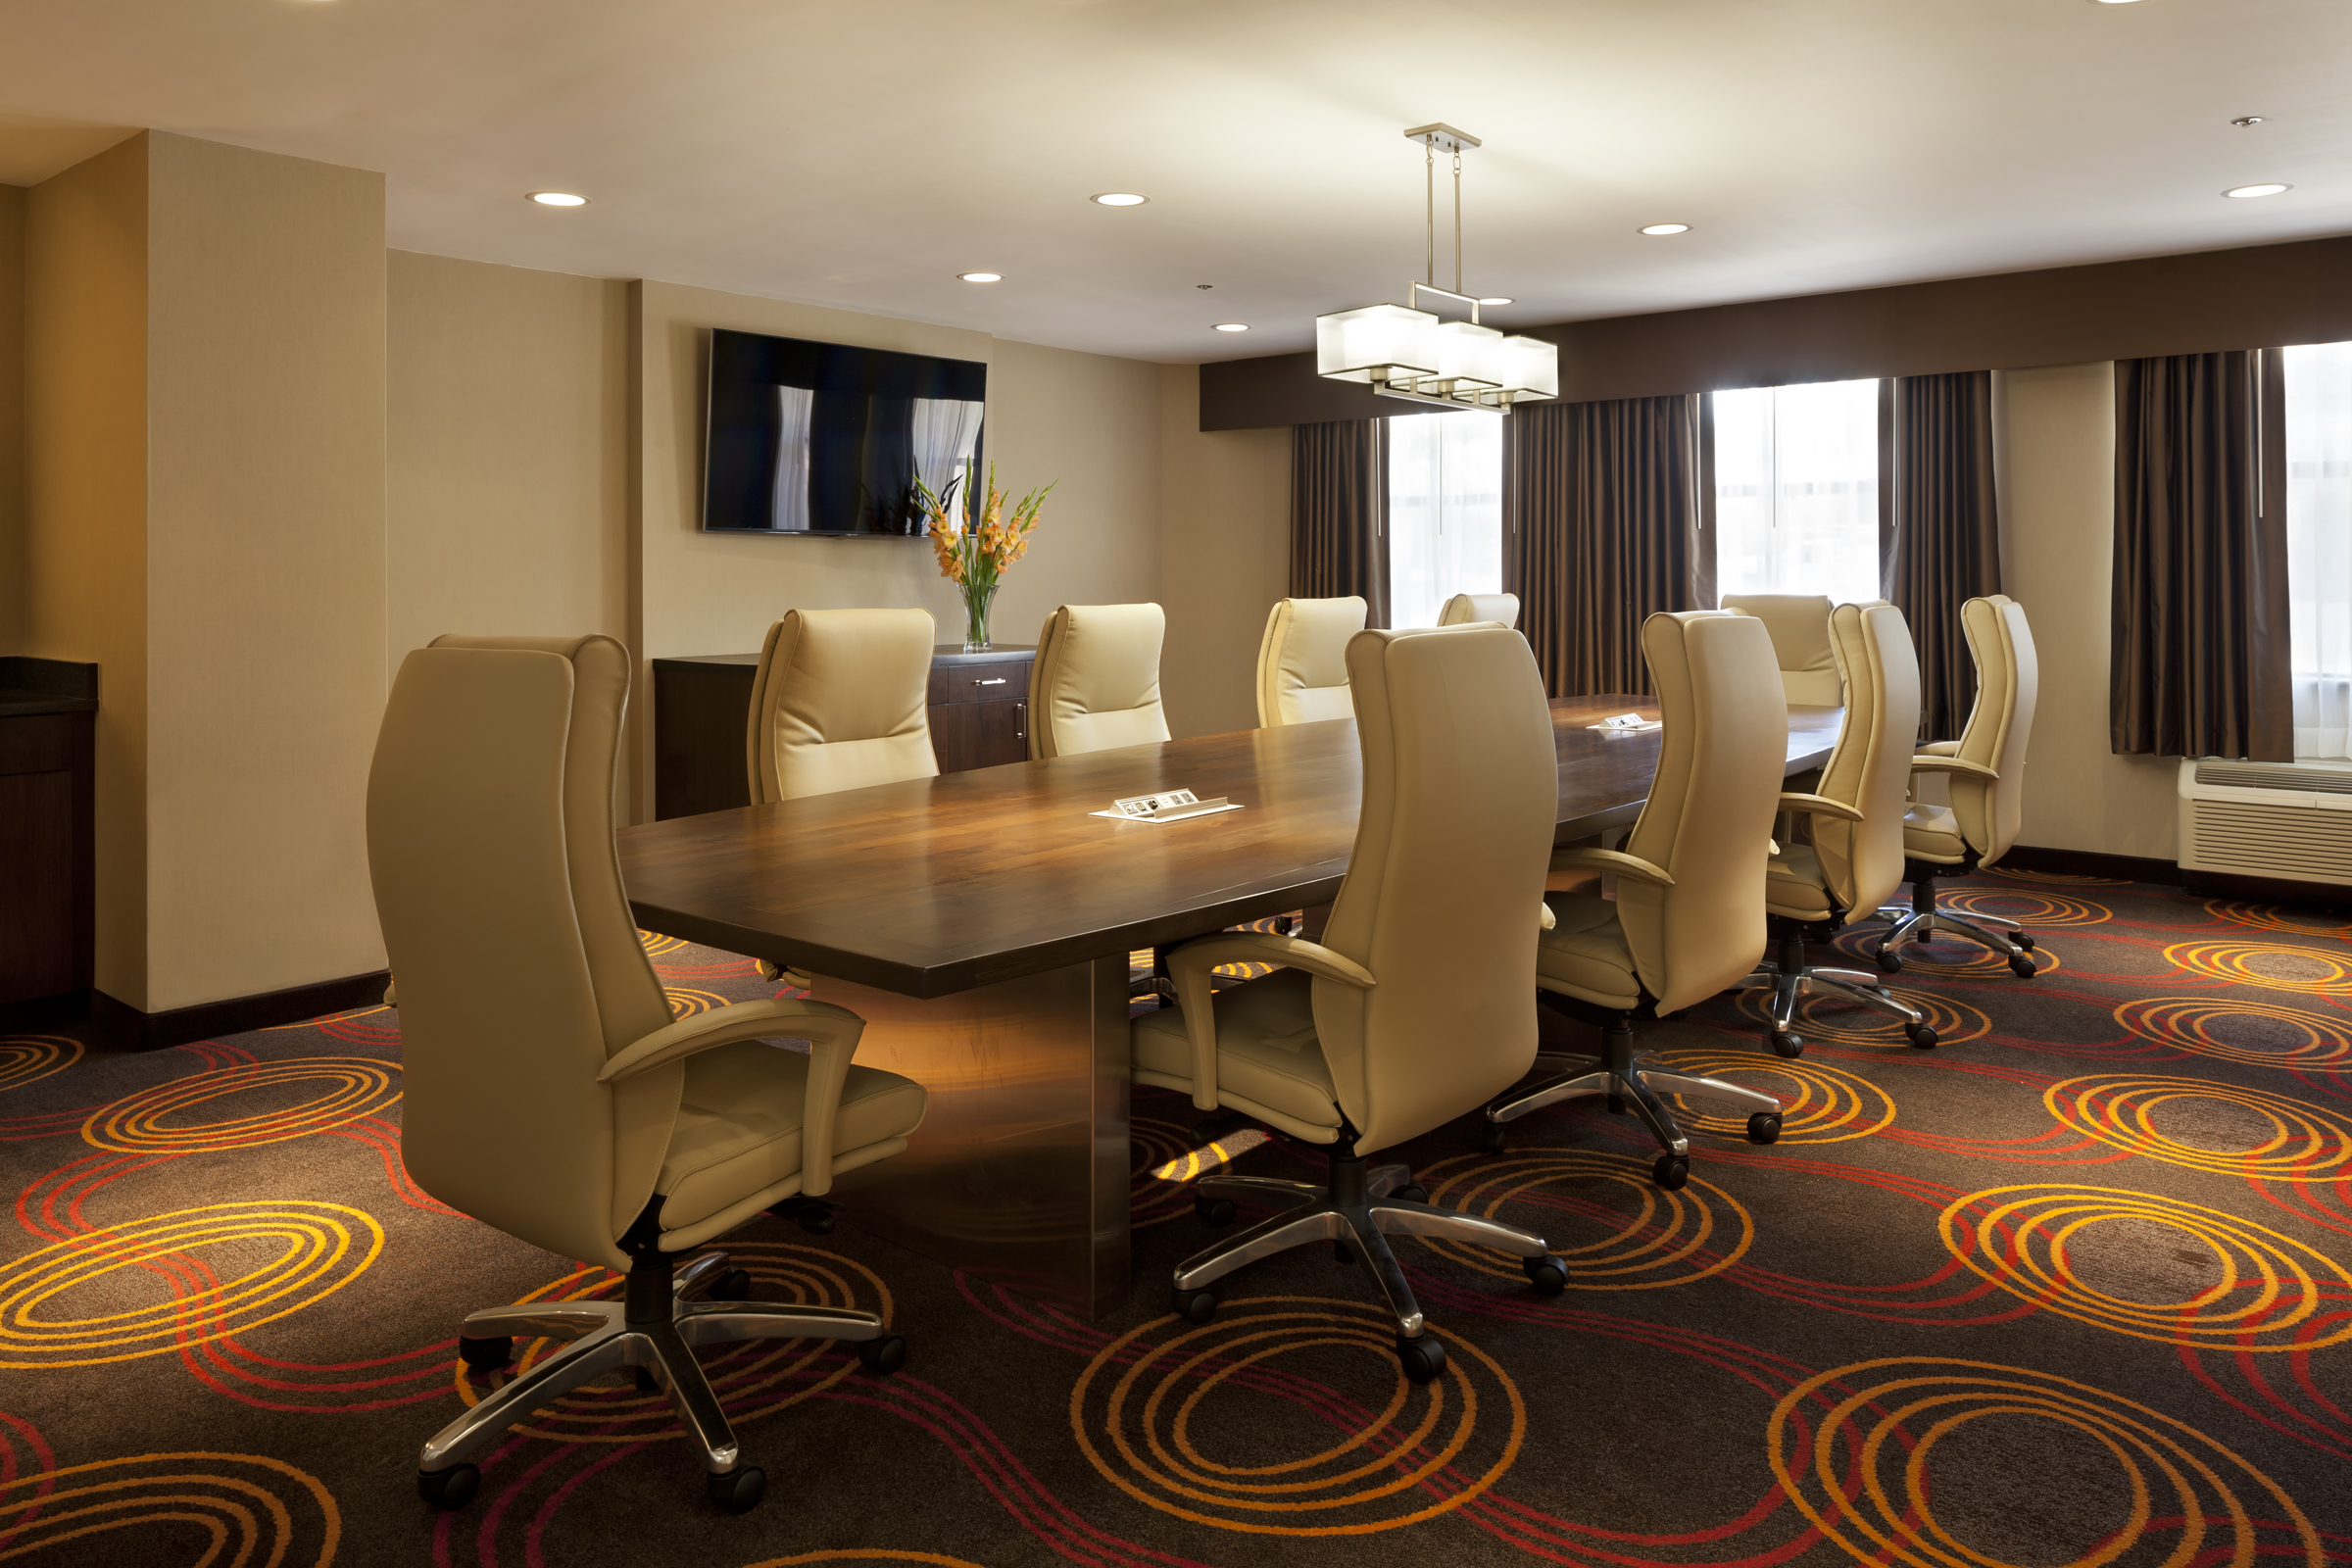 https://www.hotelsbyday.com/_data/default-hotel_image/2/10658/chesapeake-board-room-2.jpg